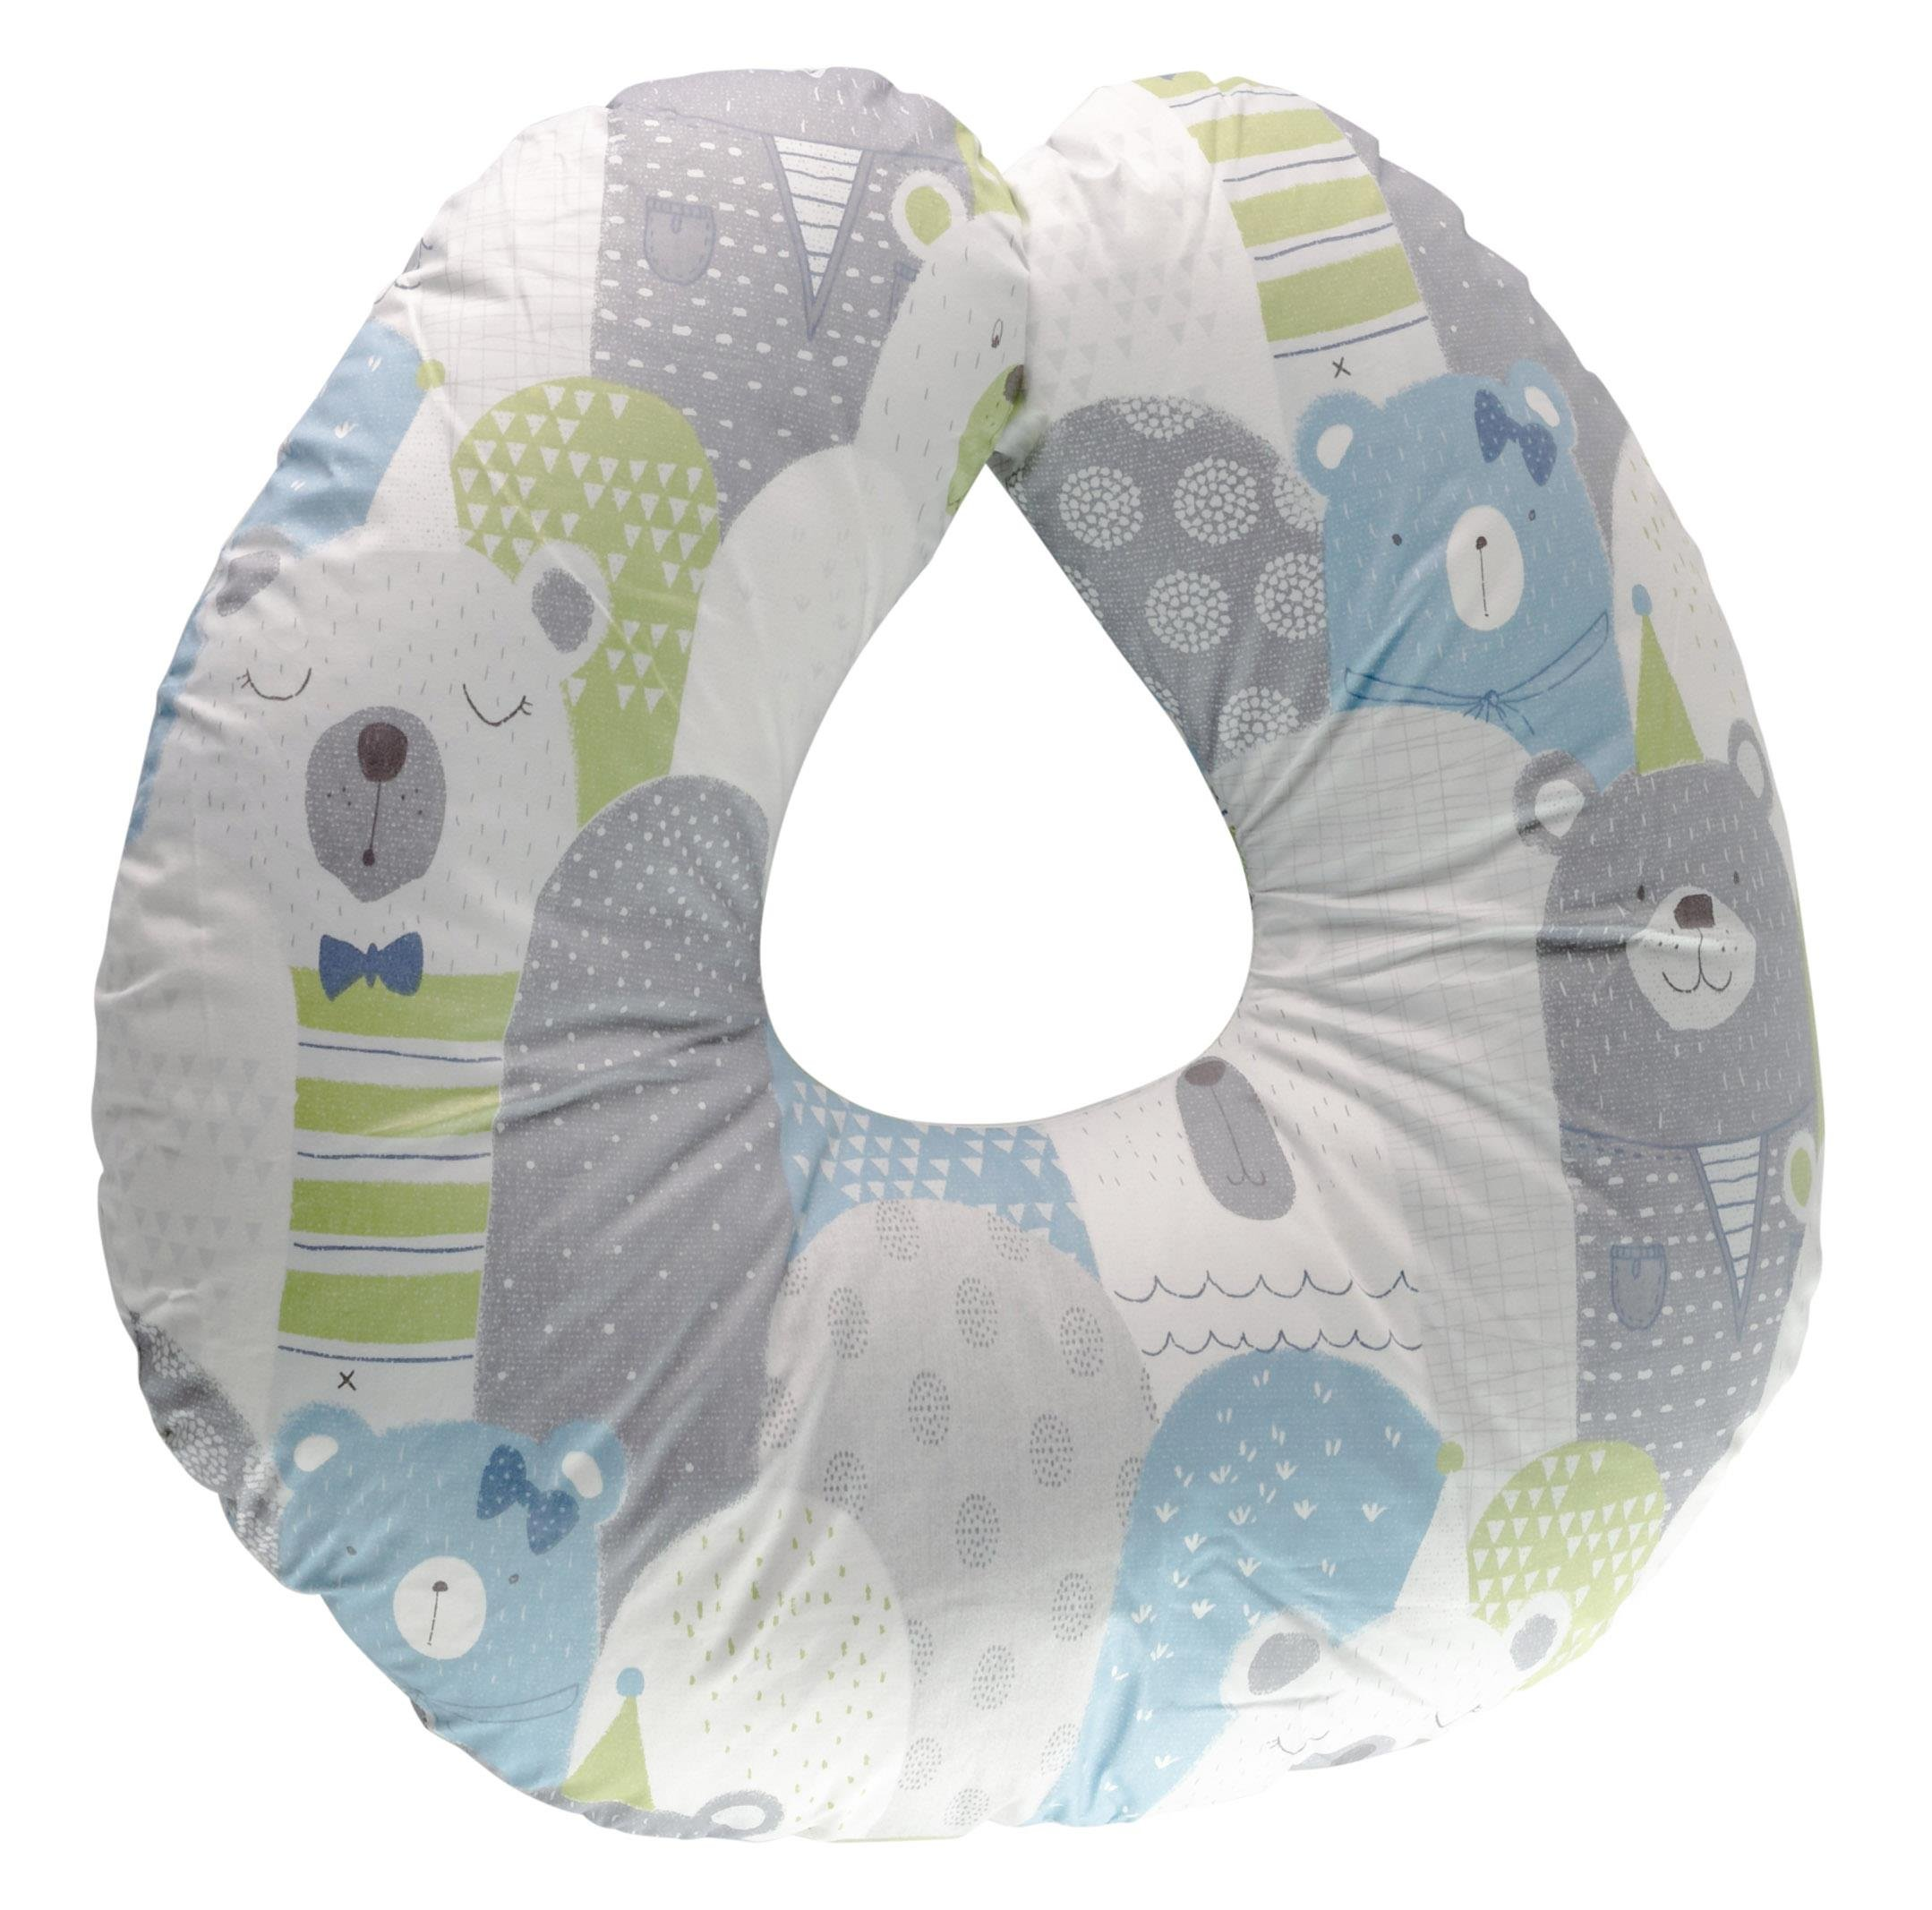 Extra-Soft Breastfeeding Baby Support Pillow w/100% Hypoallergenic Removable Slipcover | Antibacterial Newborn Infant Feeding Cushion | Portable for Travel | Nursing Pillow for Boys&Girls by Asani